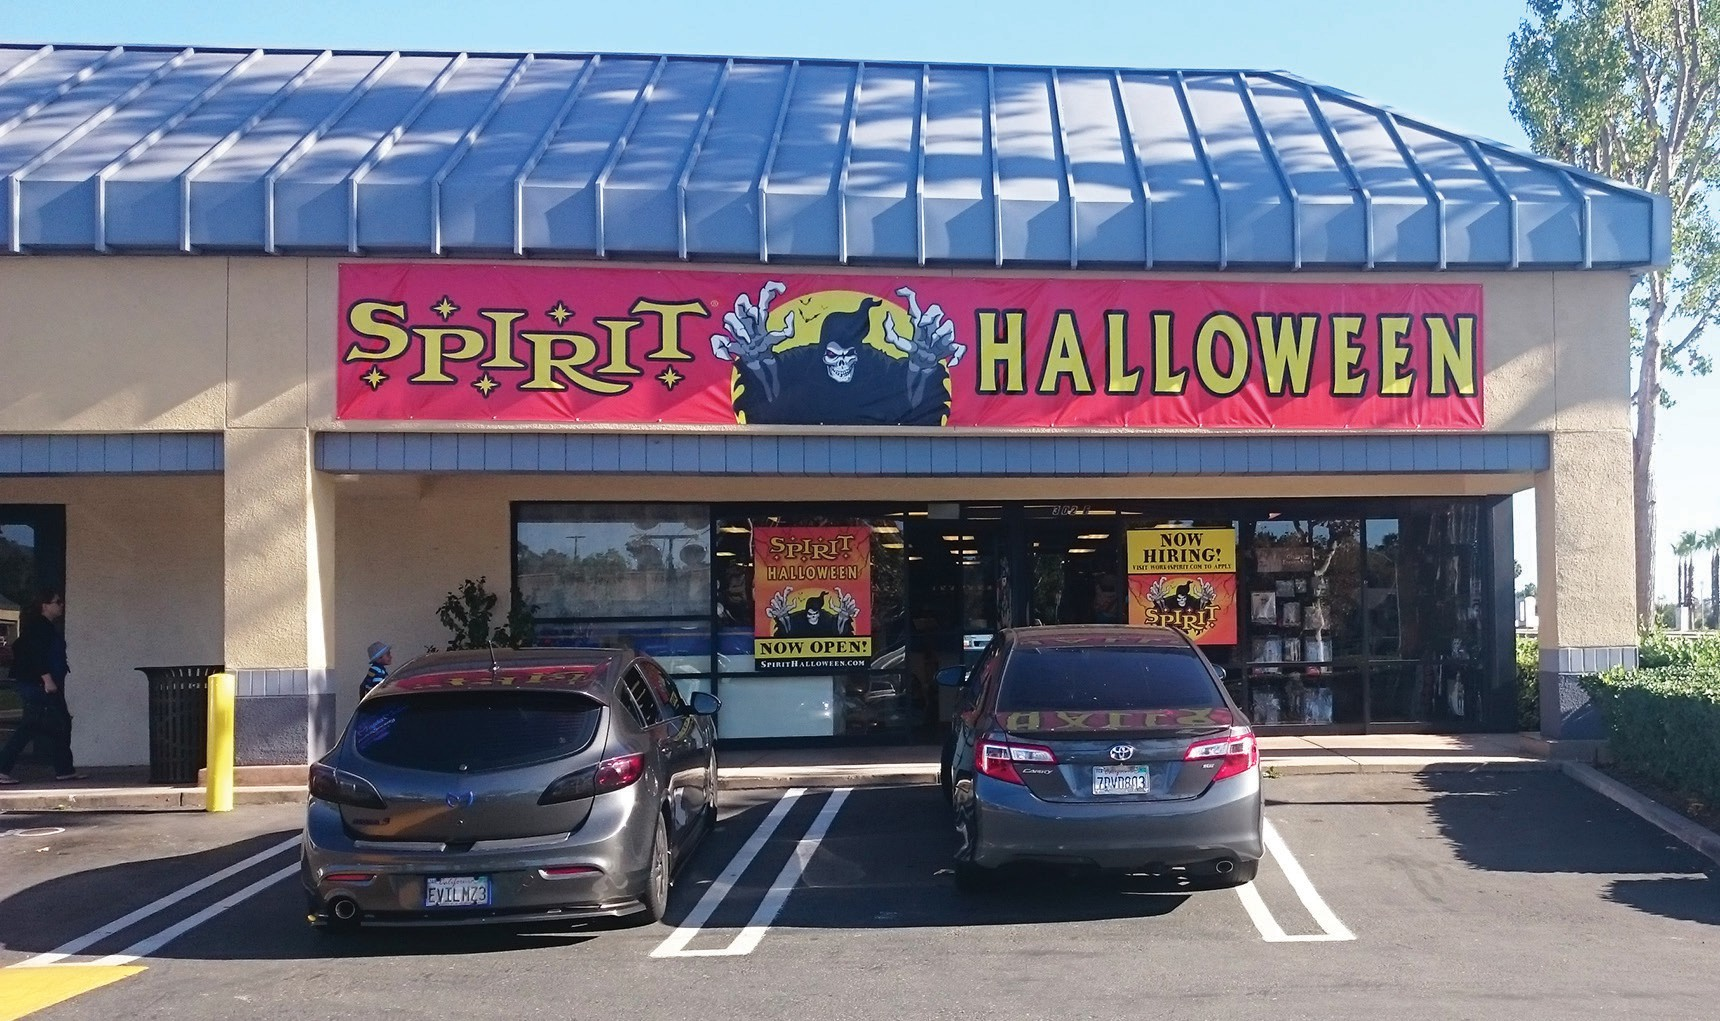 Spirit Halloween Store at the corner of El Norte Parkway. Photo by Anne S. Hall